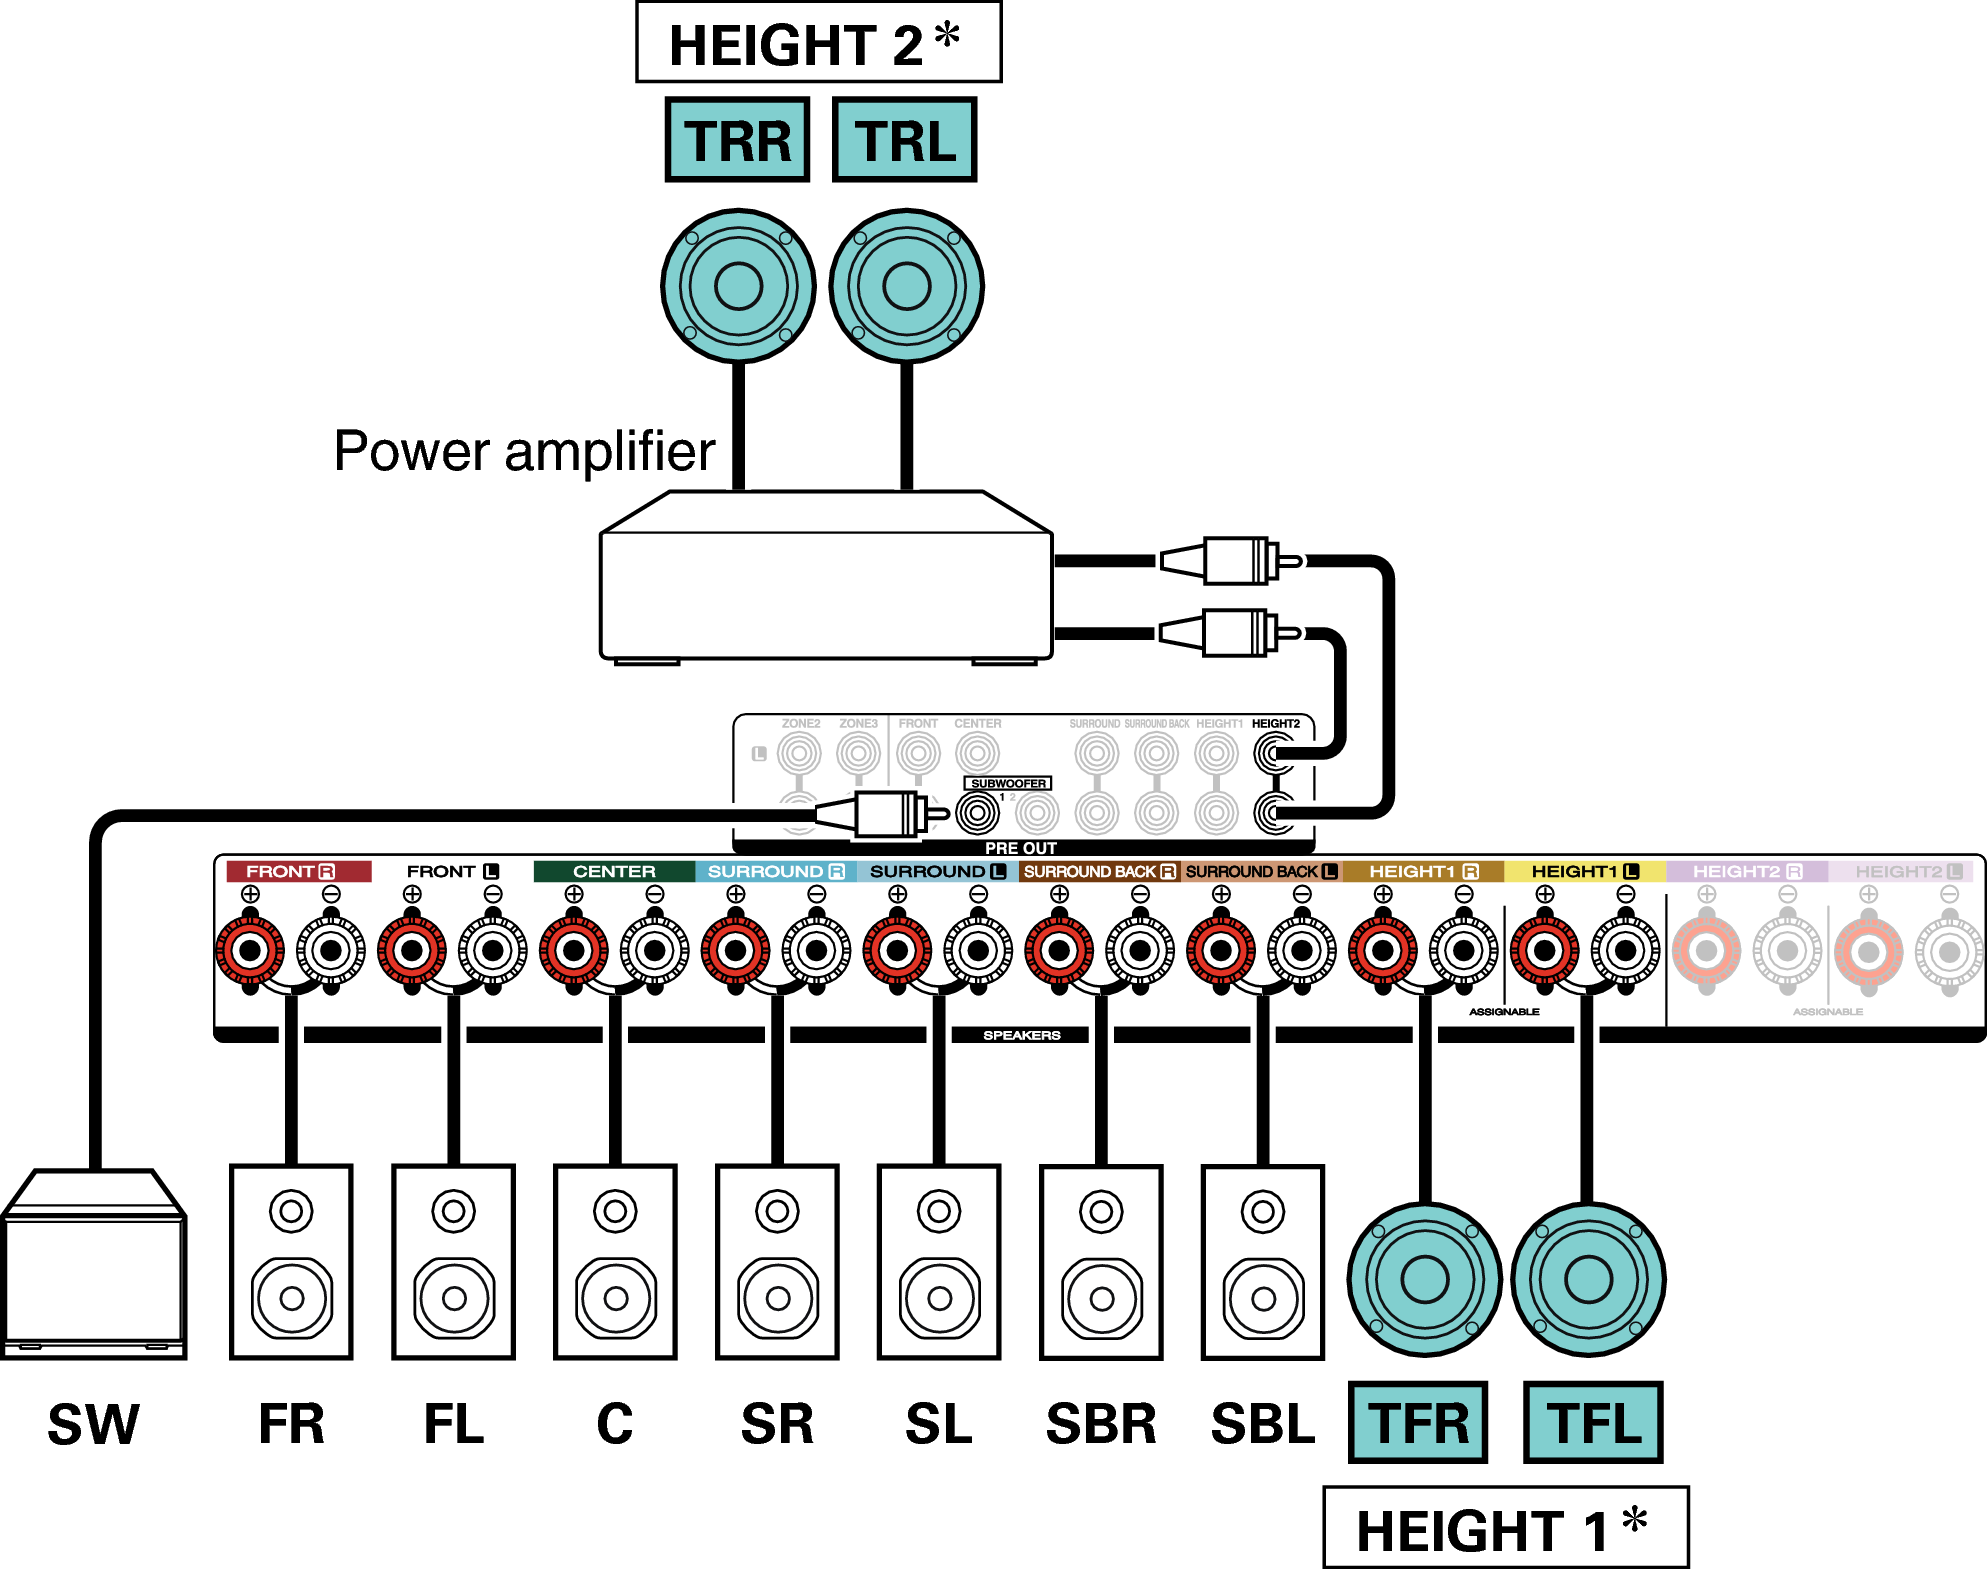 Connecting 11 1-channel speakers AVR-X4400H